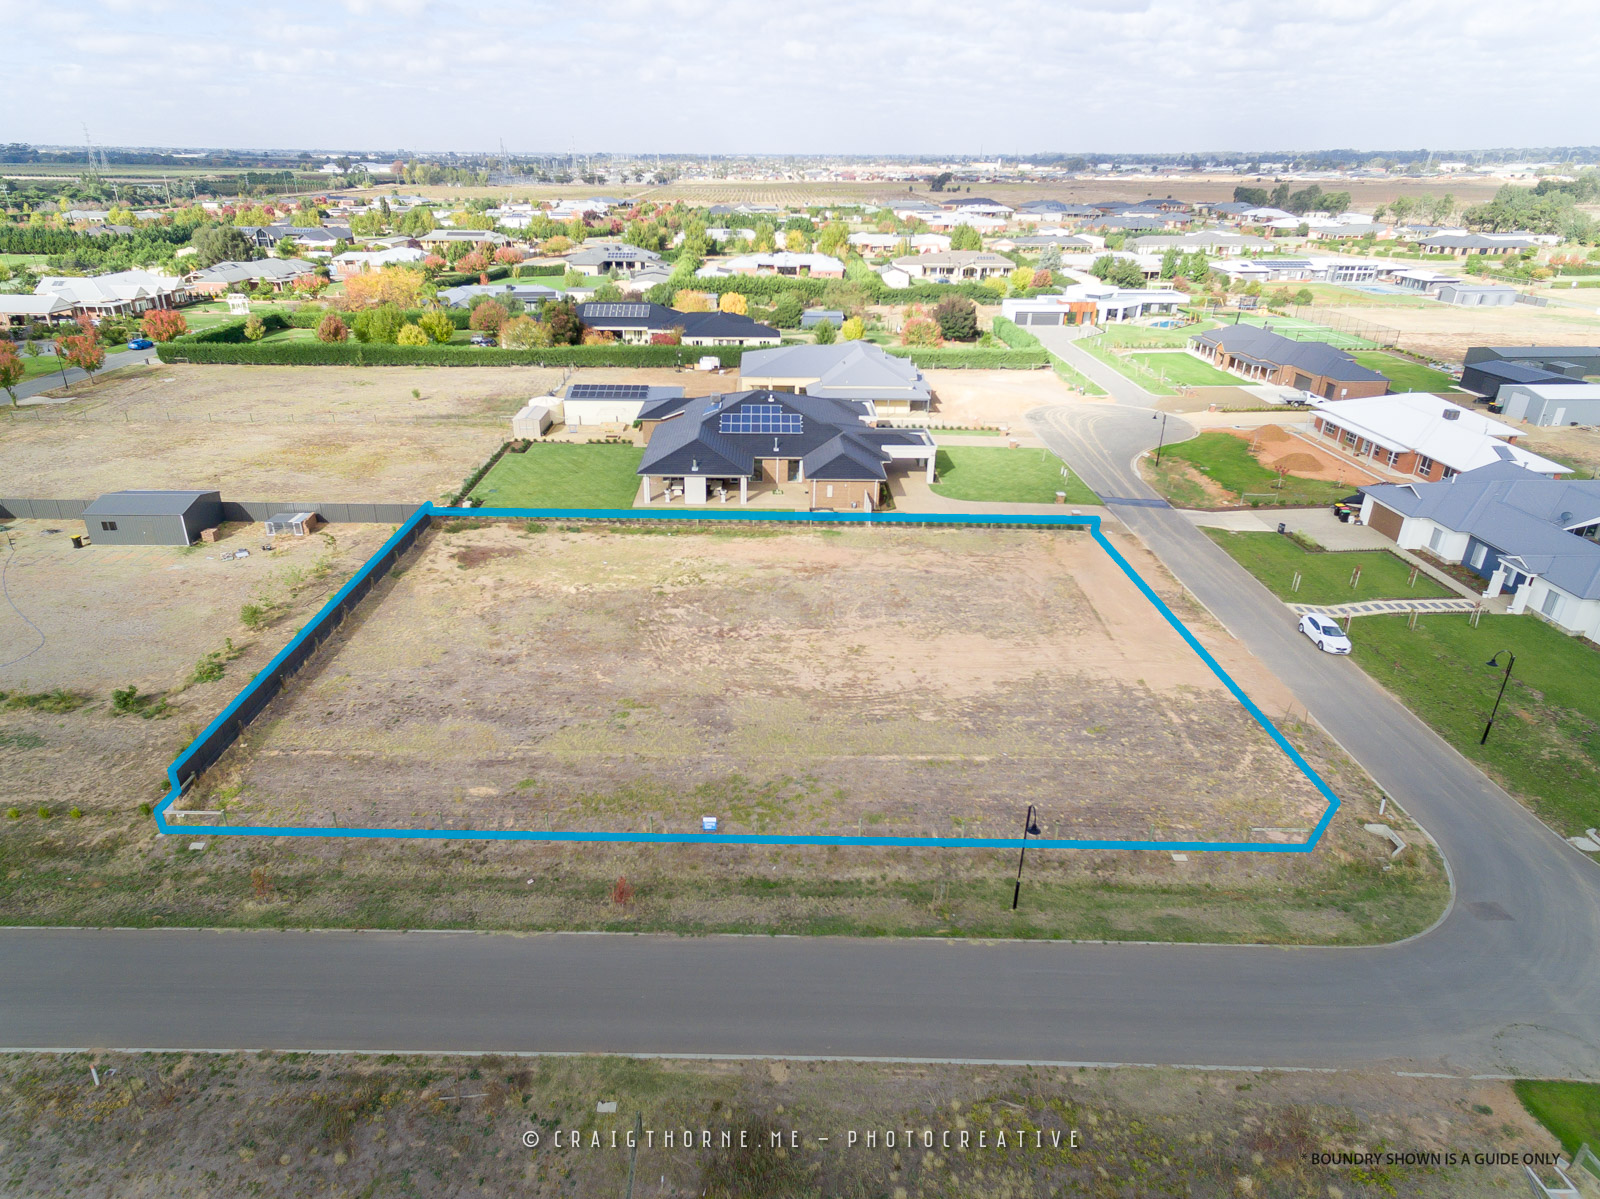 20180509-03-1-Girton-Crt-Shepparton-North-©CT-DJI_0522-BOUNDRY.jpg